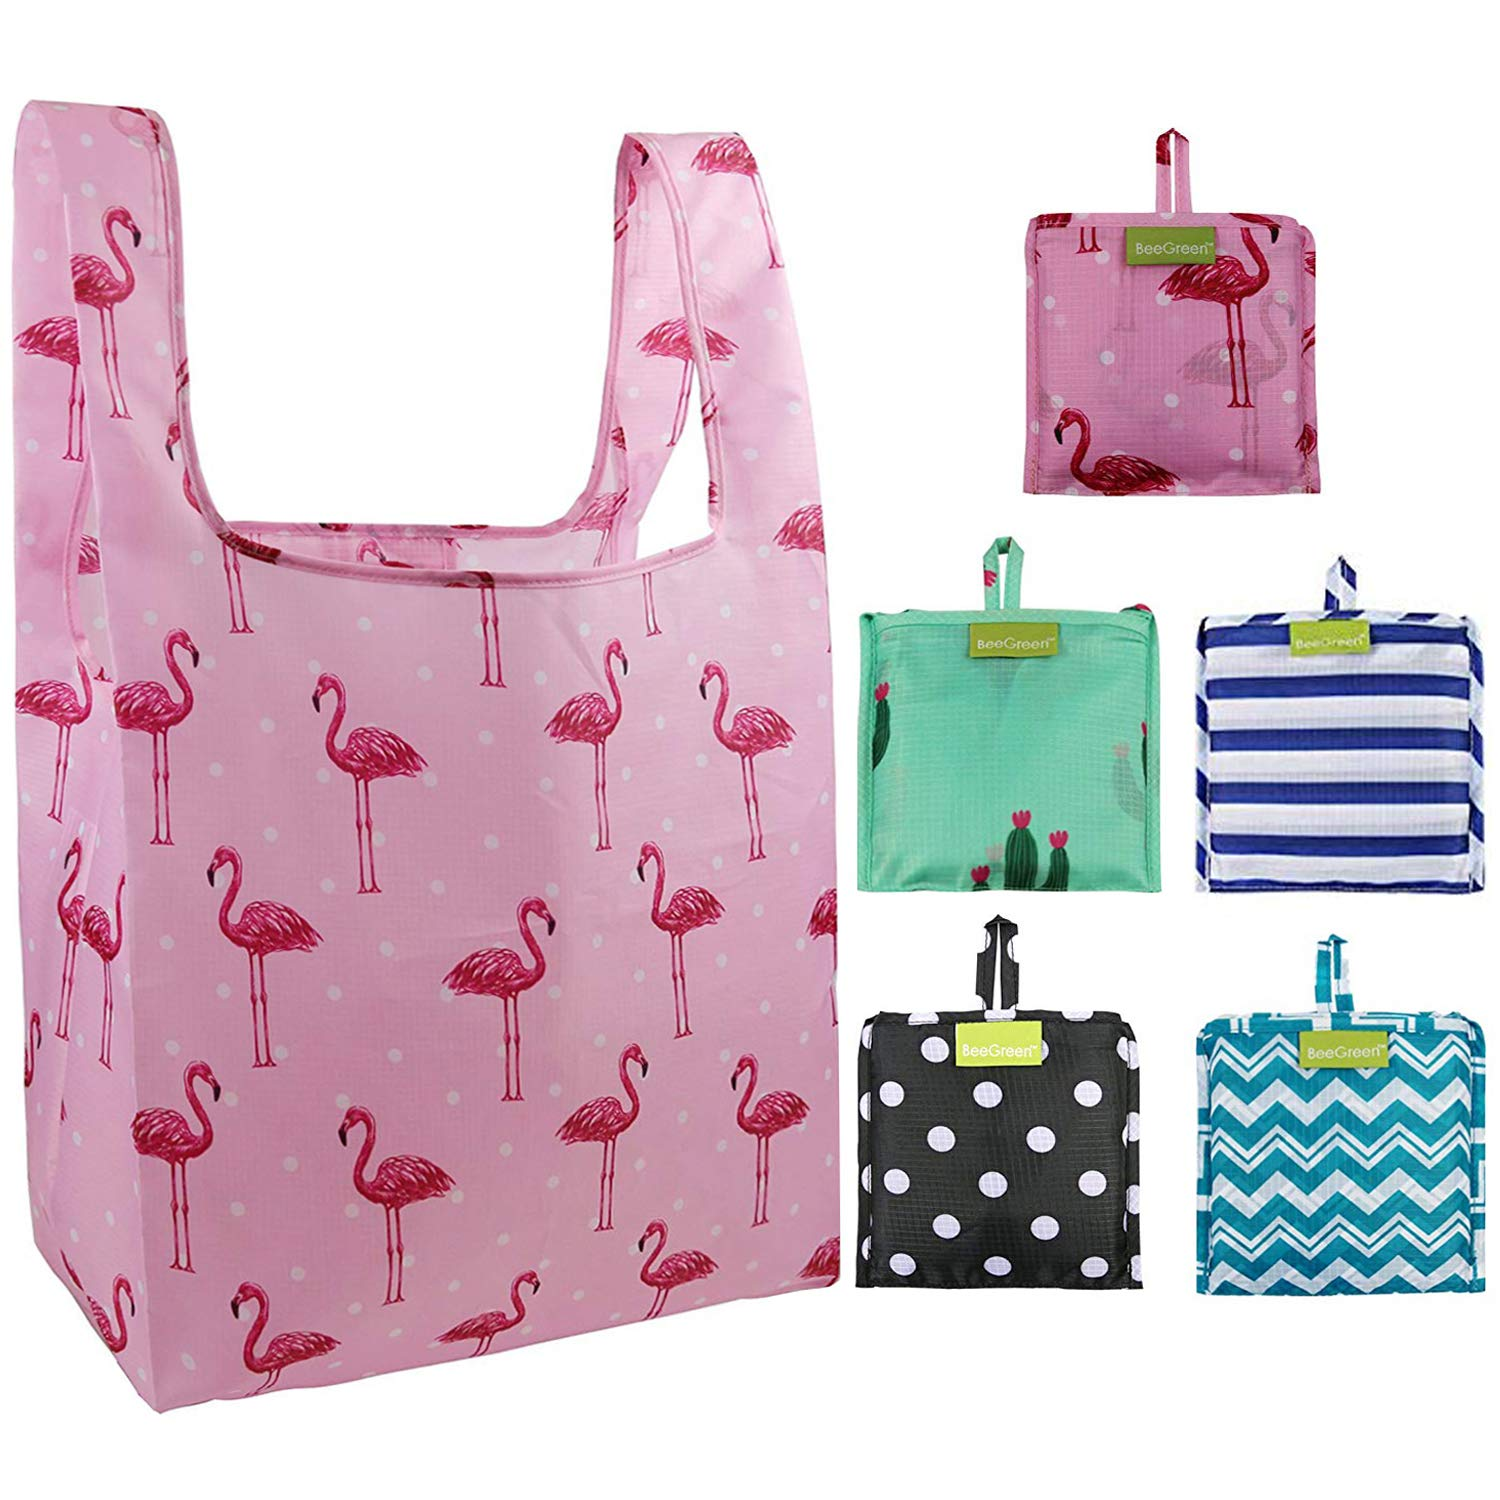 Foldable Reusable Grocery Bags Bulk 5 Cute Designs Folding Shopping Tote Bag Fits in Pocket Eco Friendly Ripstop Nylon Waterproof and Machine Washable Cloth Bags for Groceries Recycle Gift Bags Large by BeeGreen